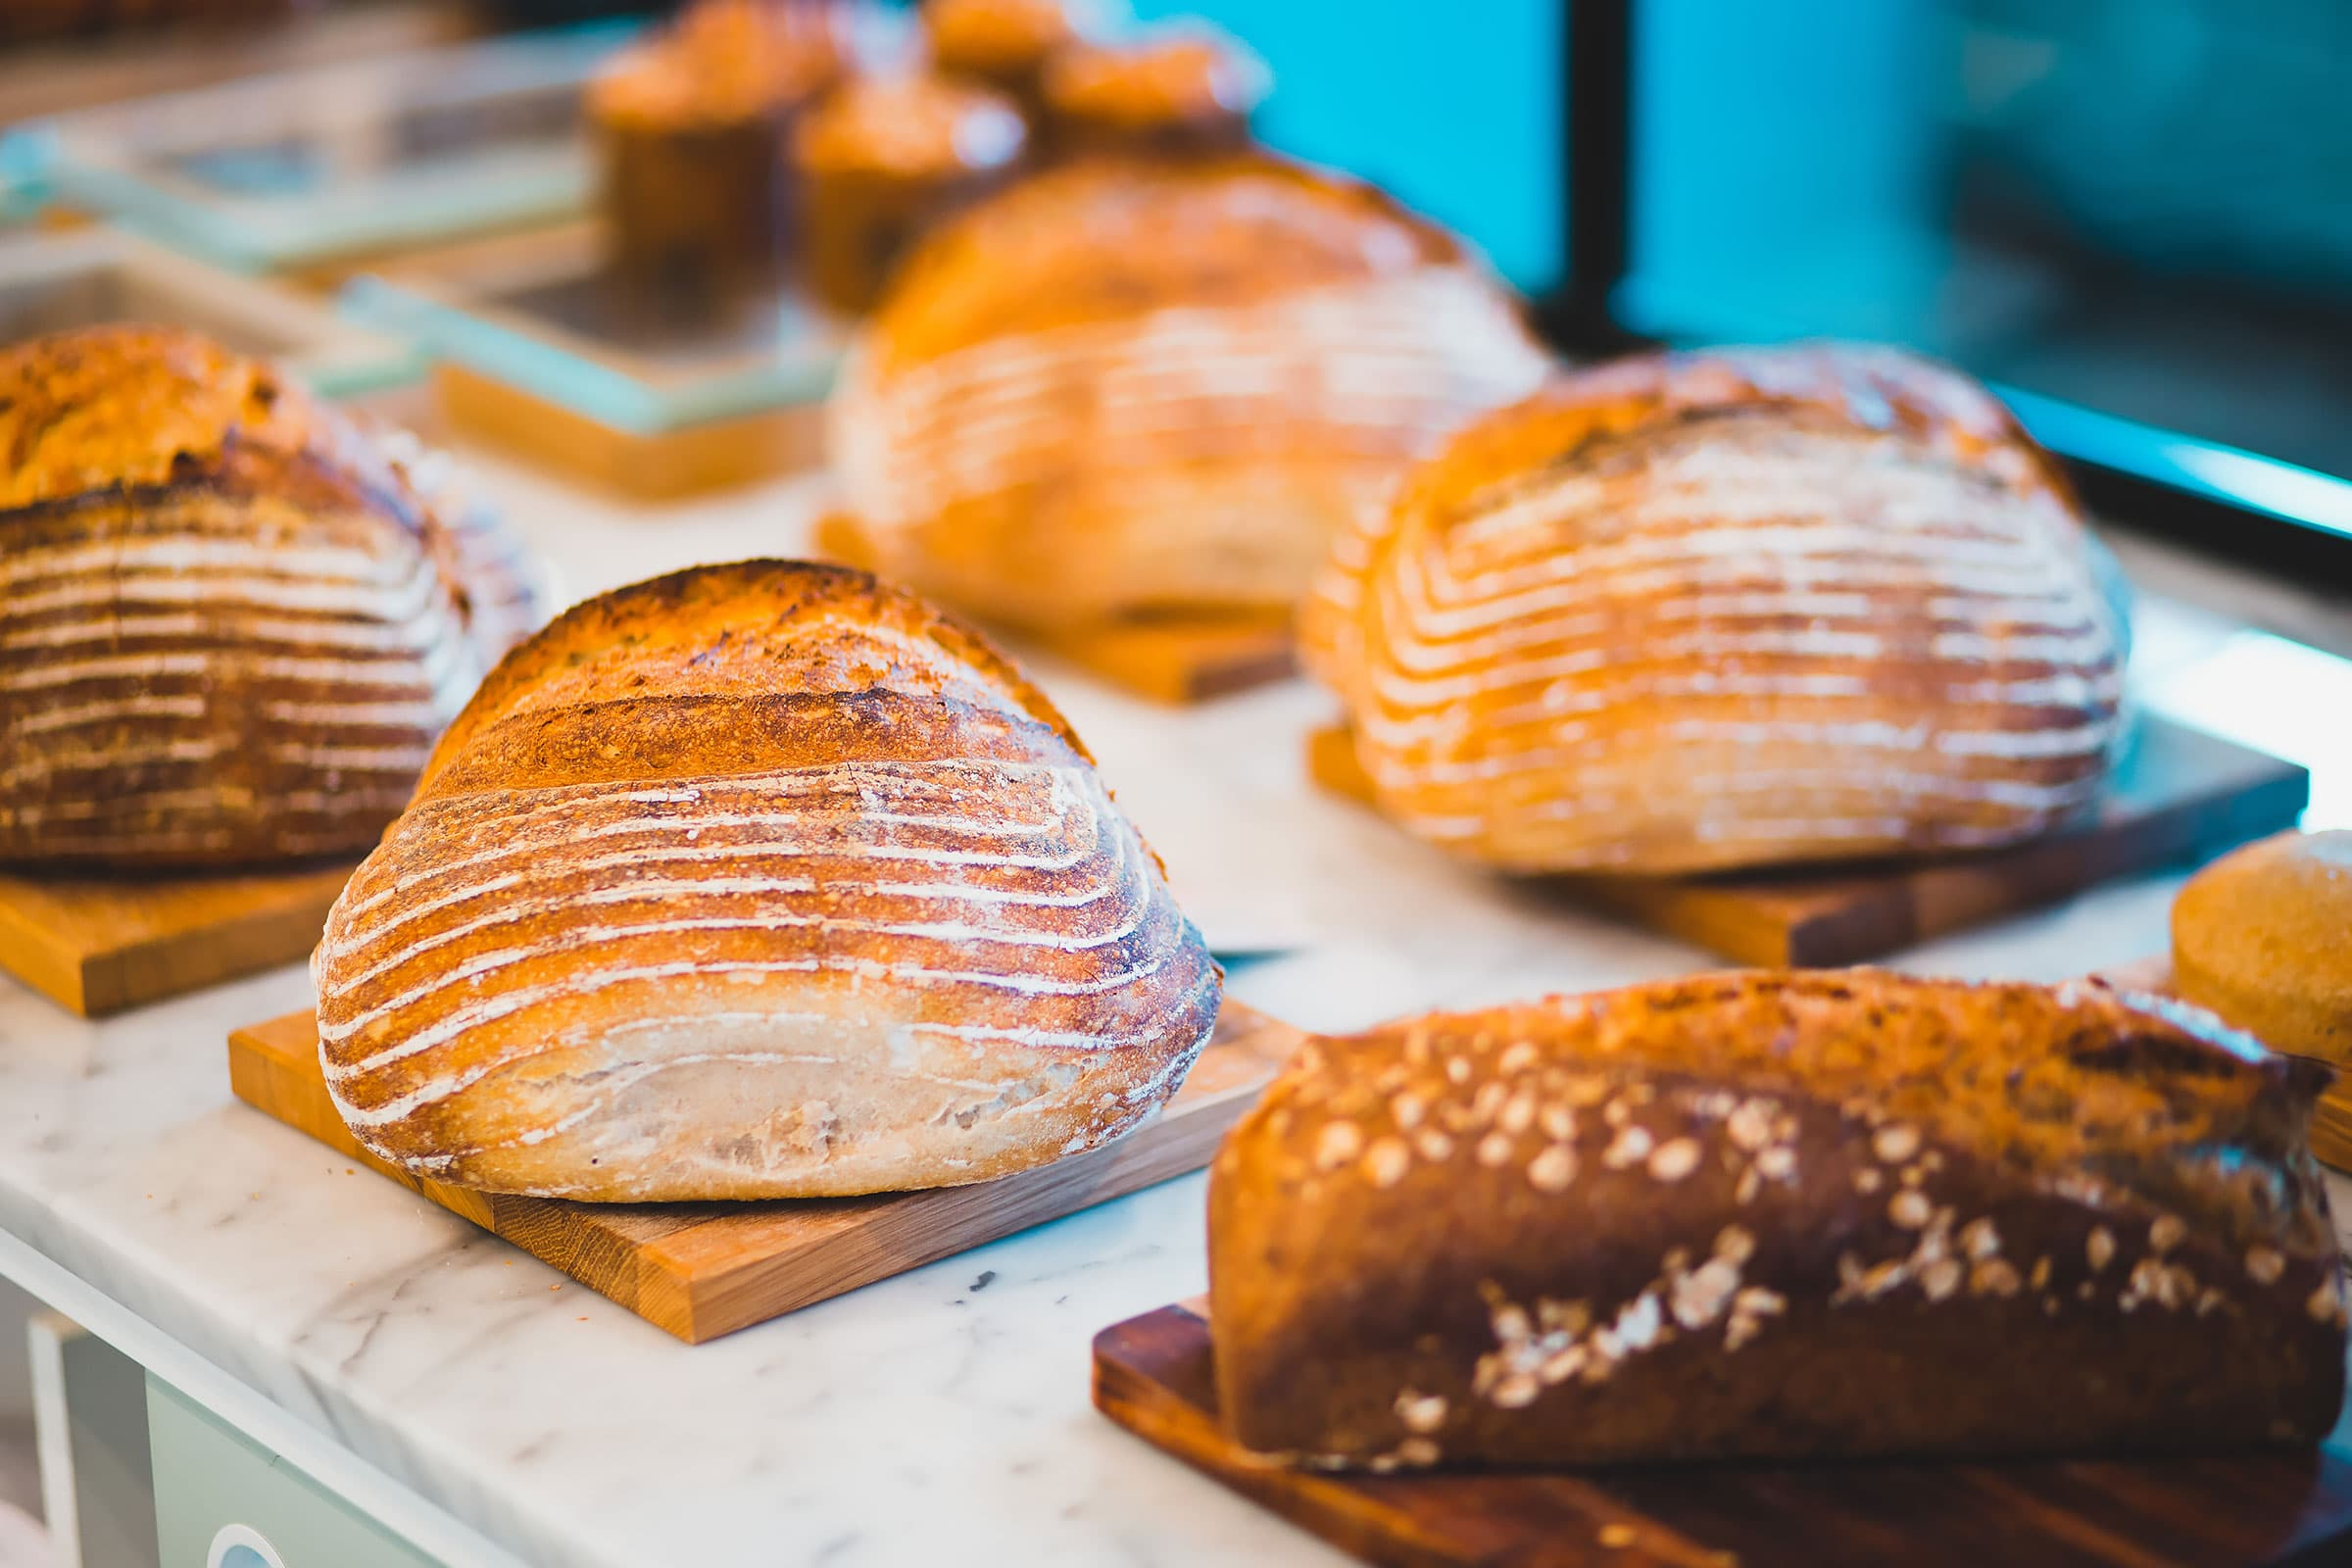 The guide to Stockholm's best bakeries